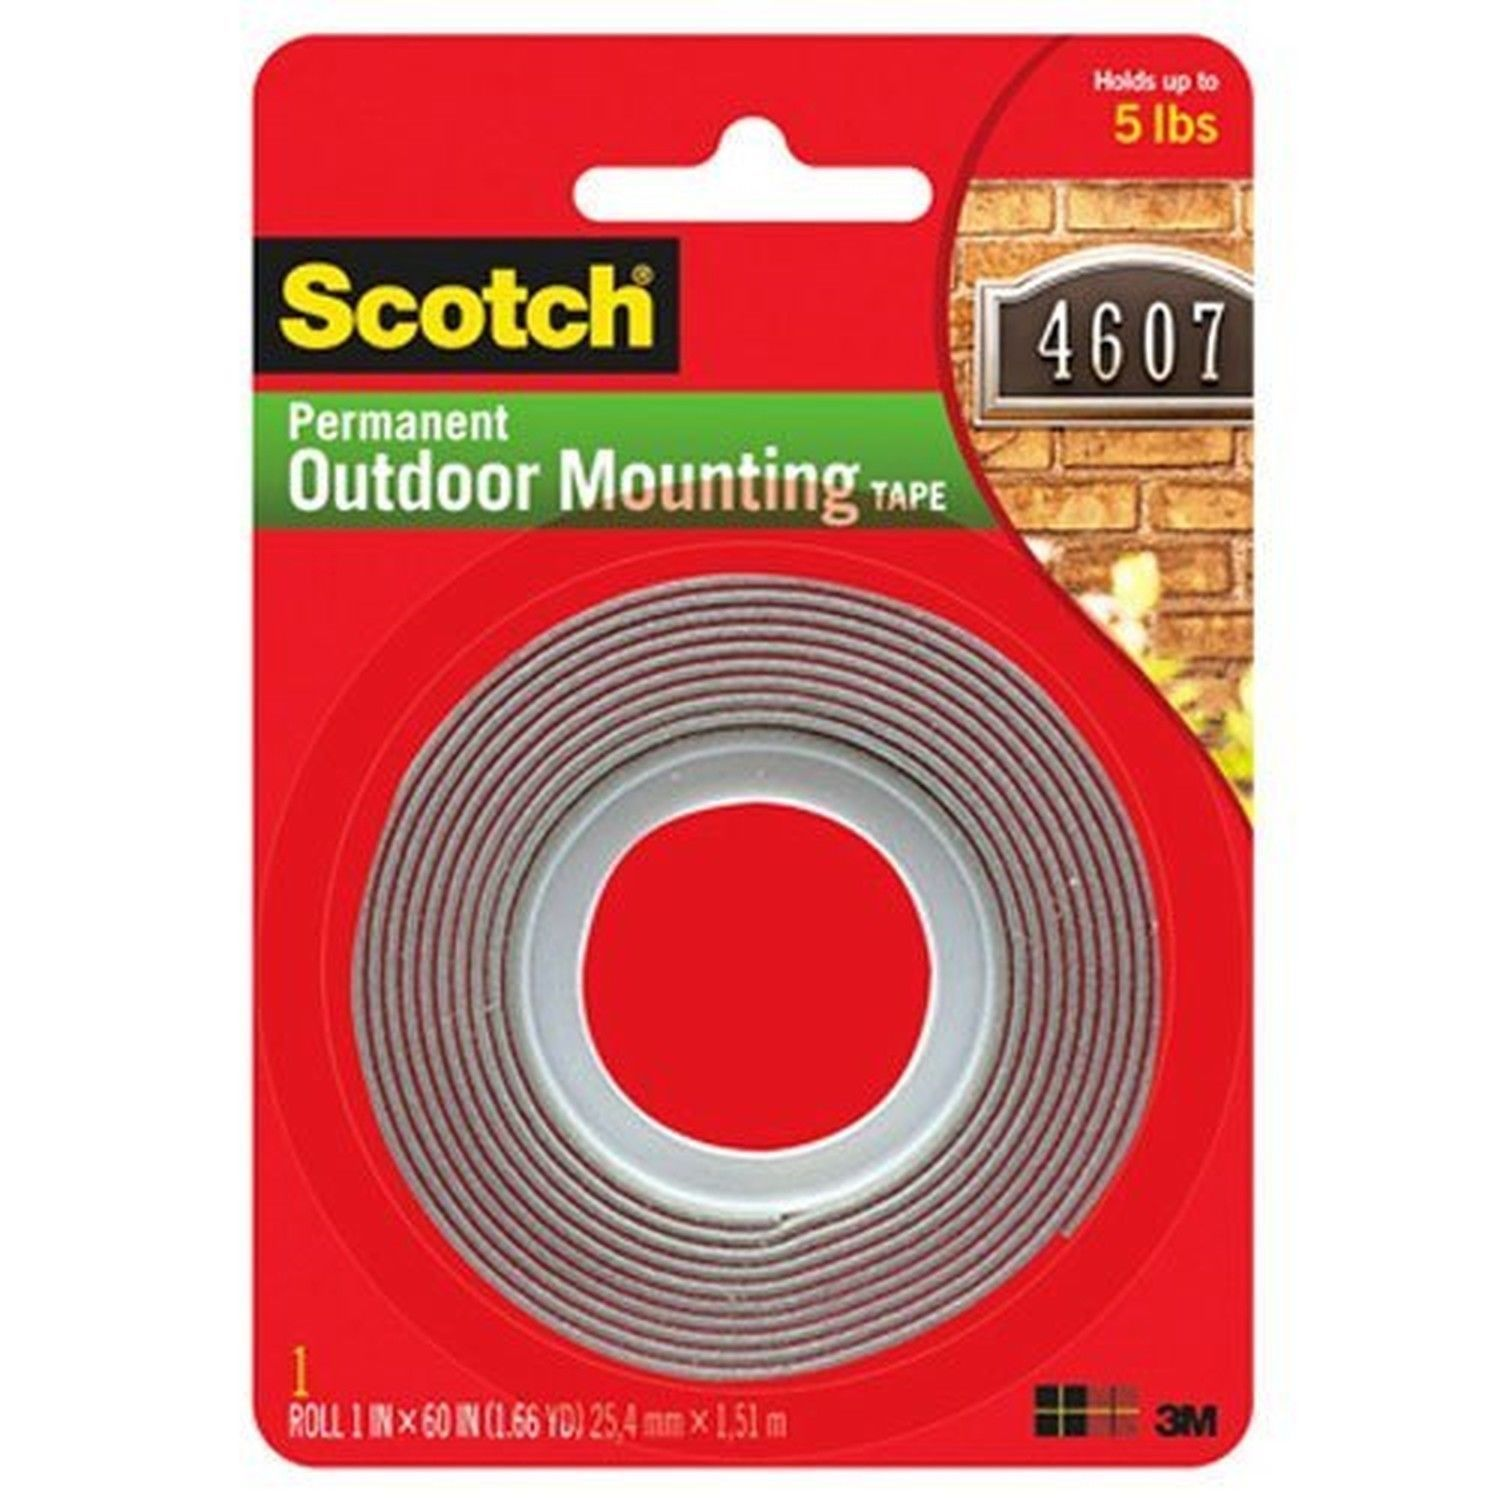 3M Scotch 4011 Exterior Mounting Tape 1 in x 60 in 1 Pack